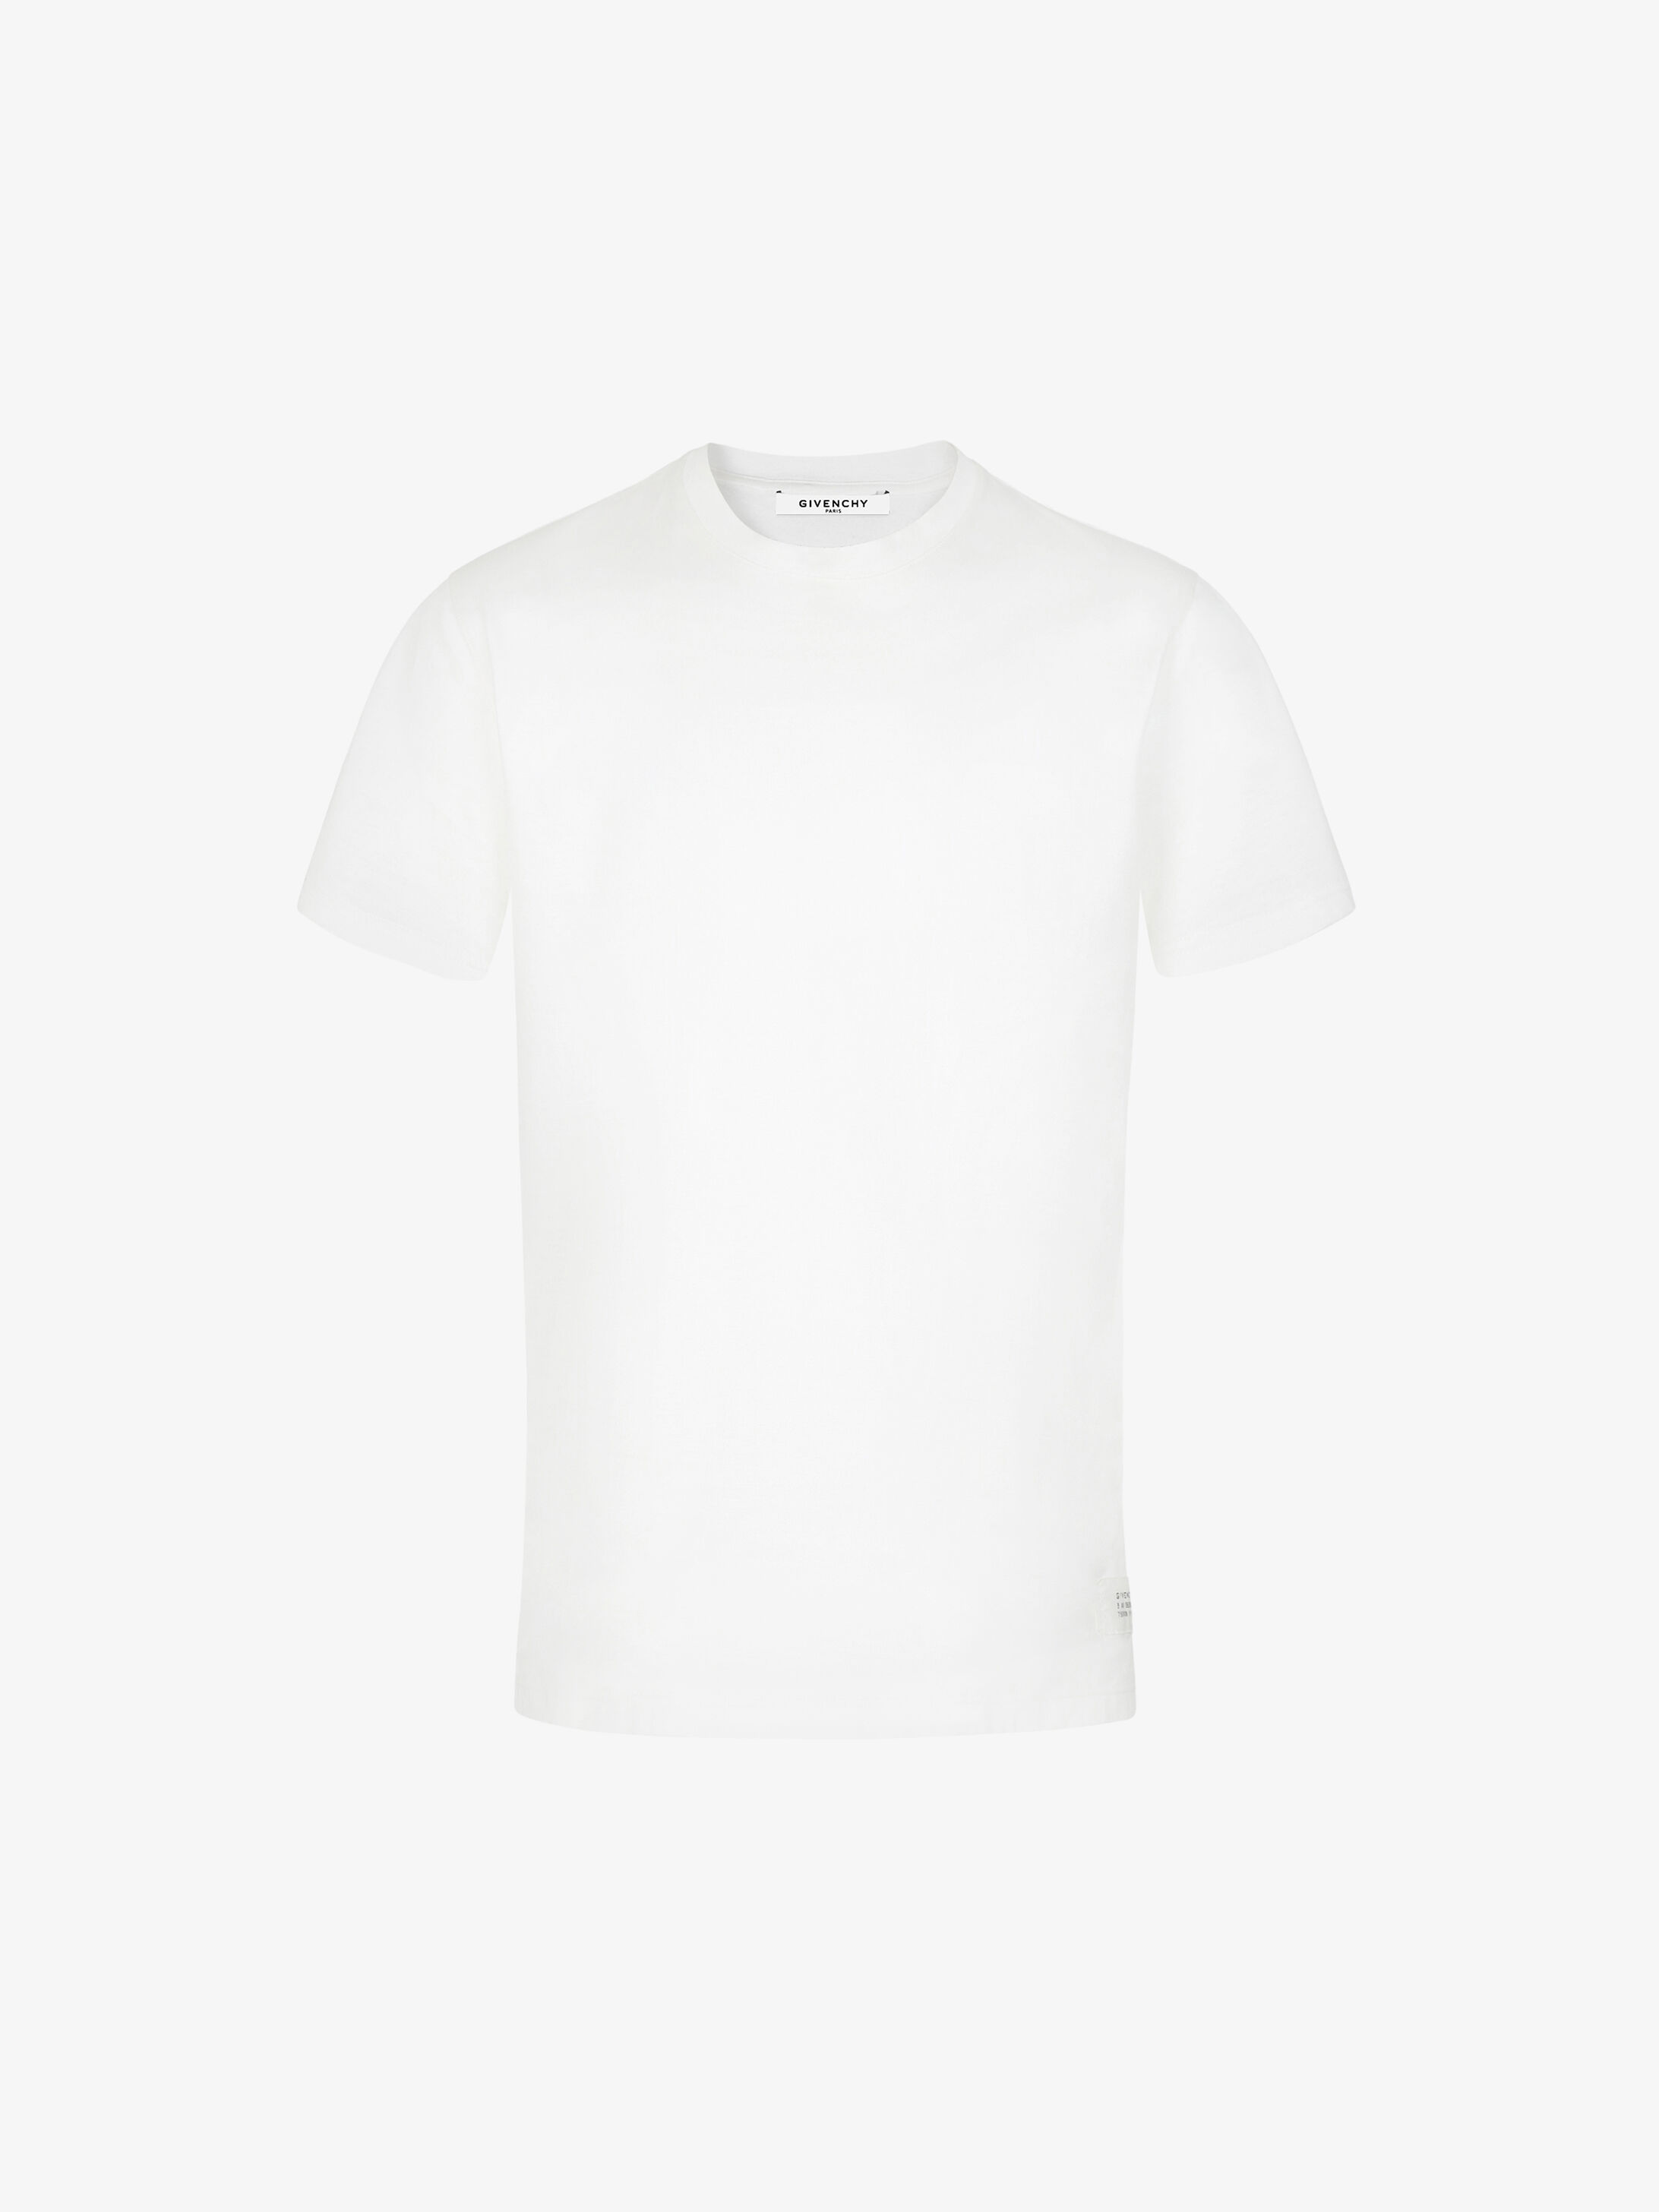 4a41be49a81 Men s T-Shirts collection by Givenchy.